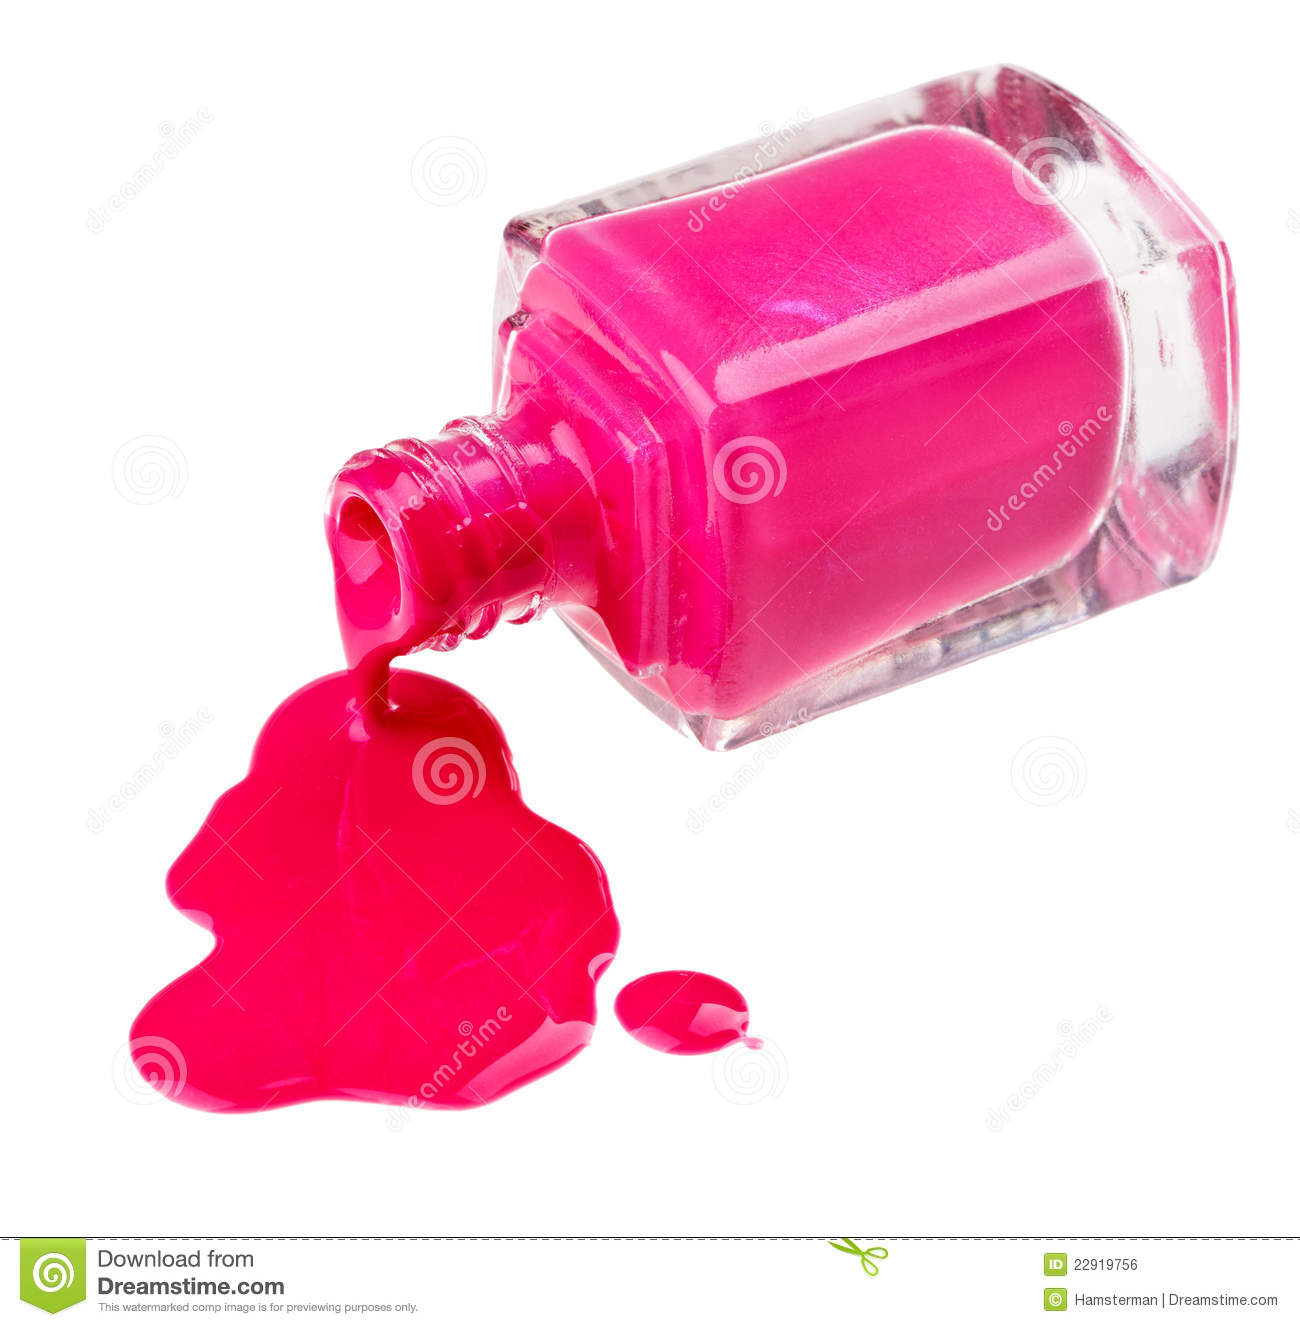 Bottle Of Pink Nail Polish With Drop Samples Stock Photo - Image of ...